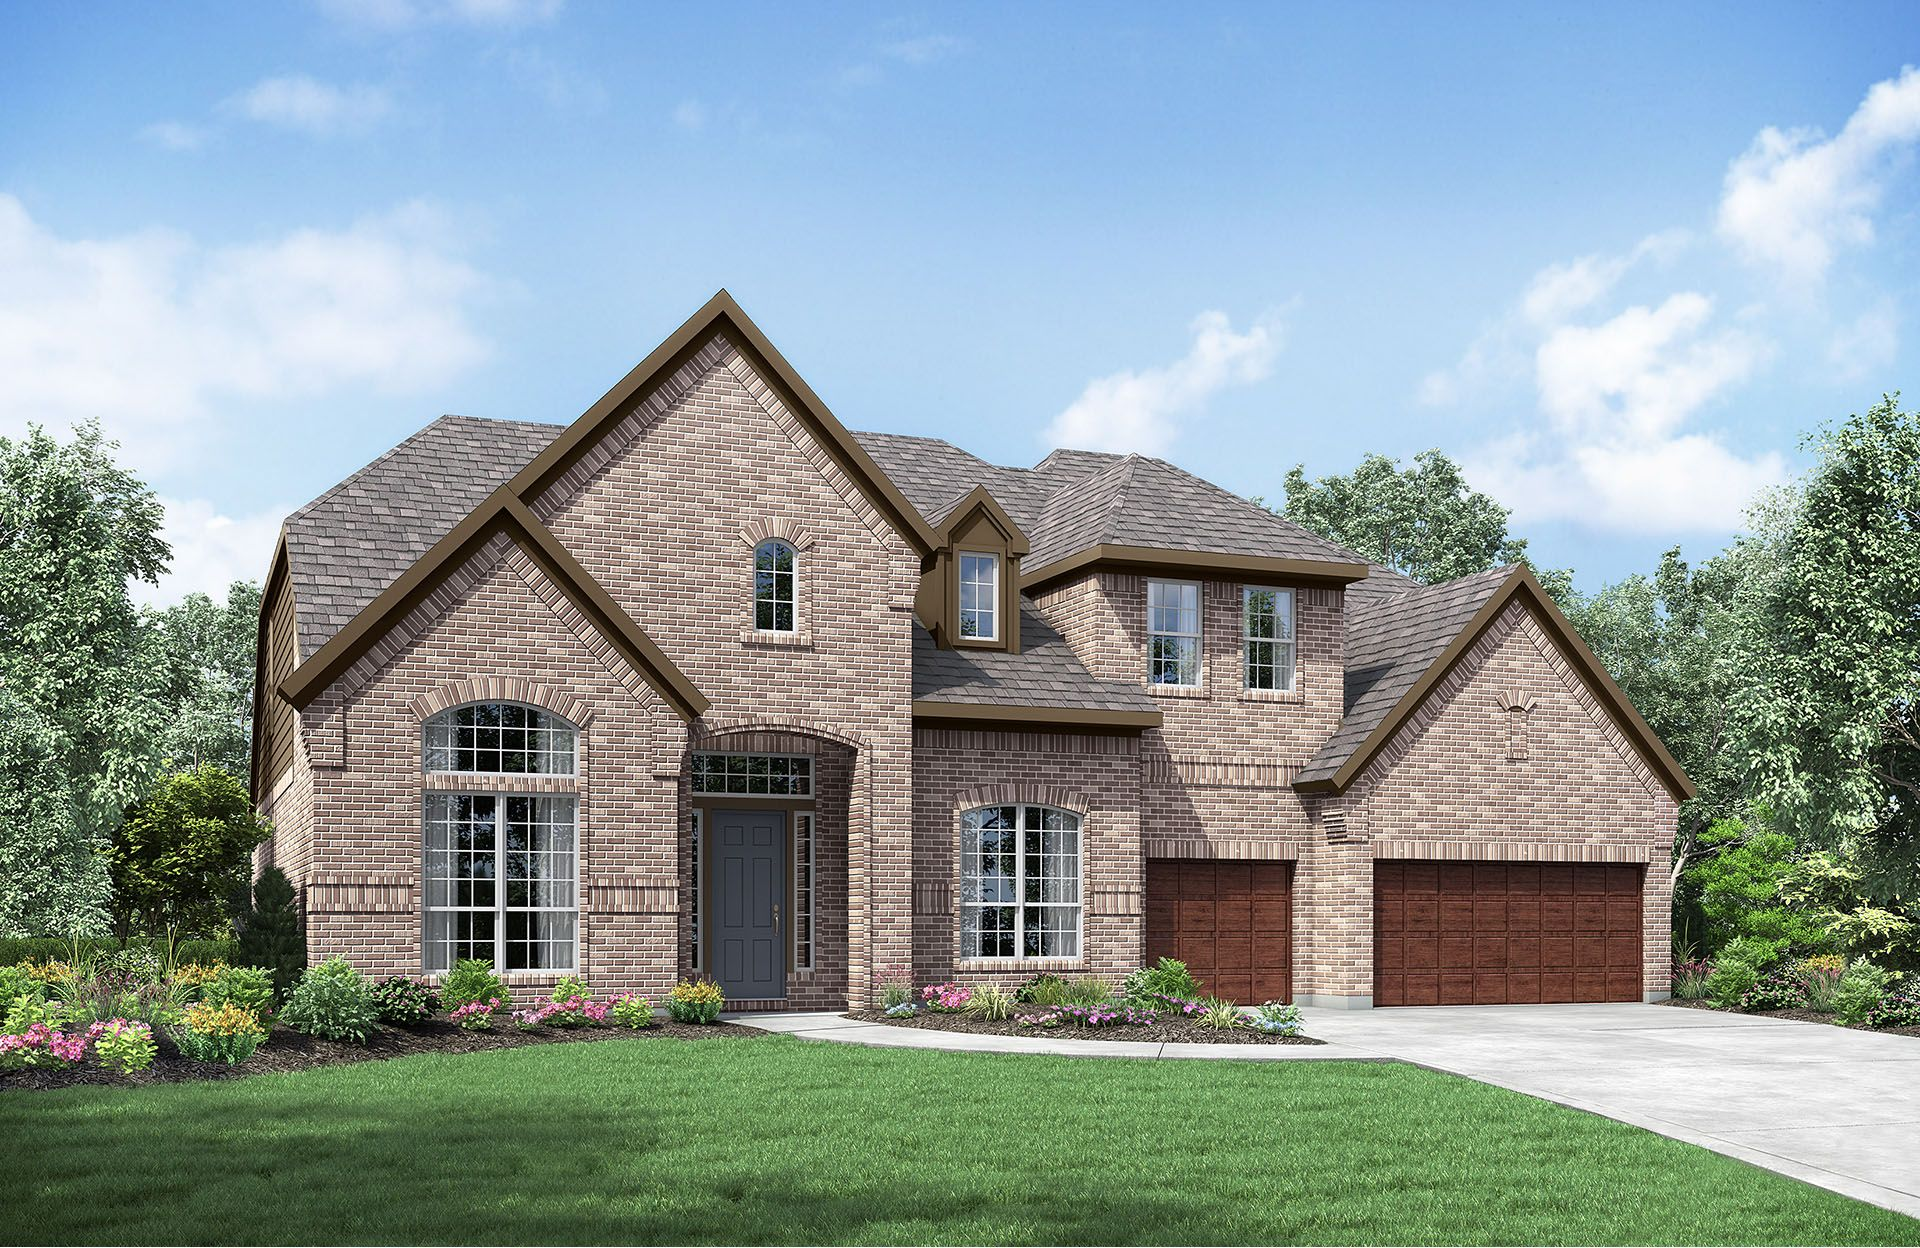 Single Family for Sale at Belterra - Driscoll 131 Waters View Court Dripping Springs, Texas 78620 United States